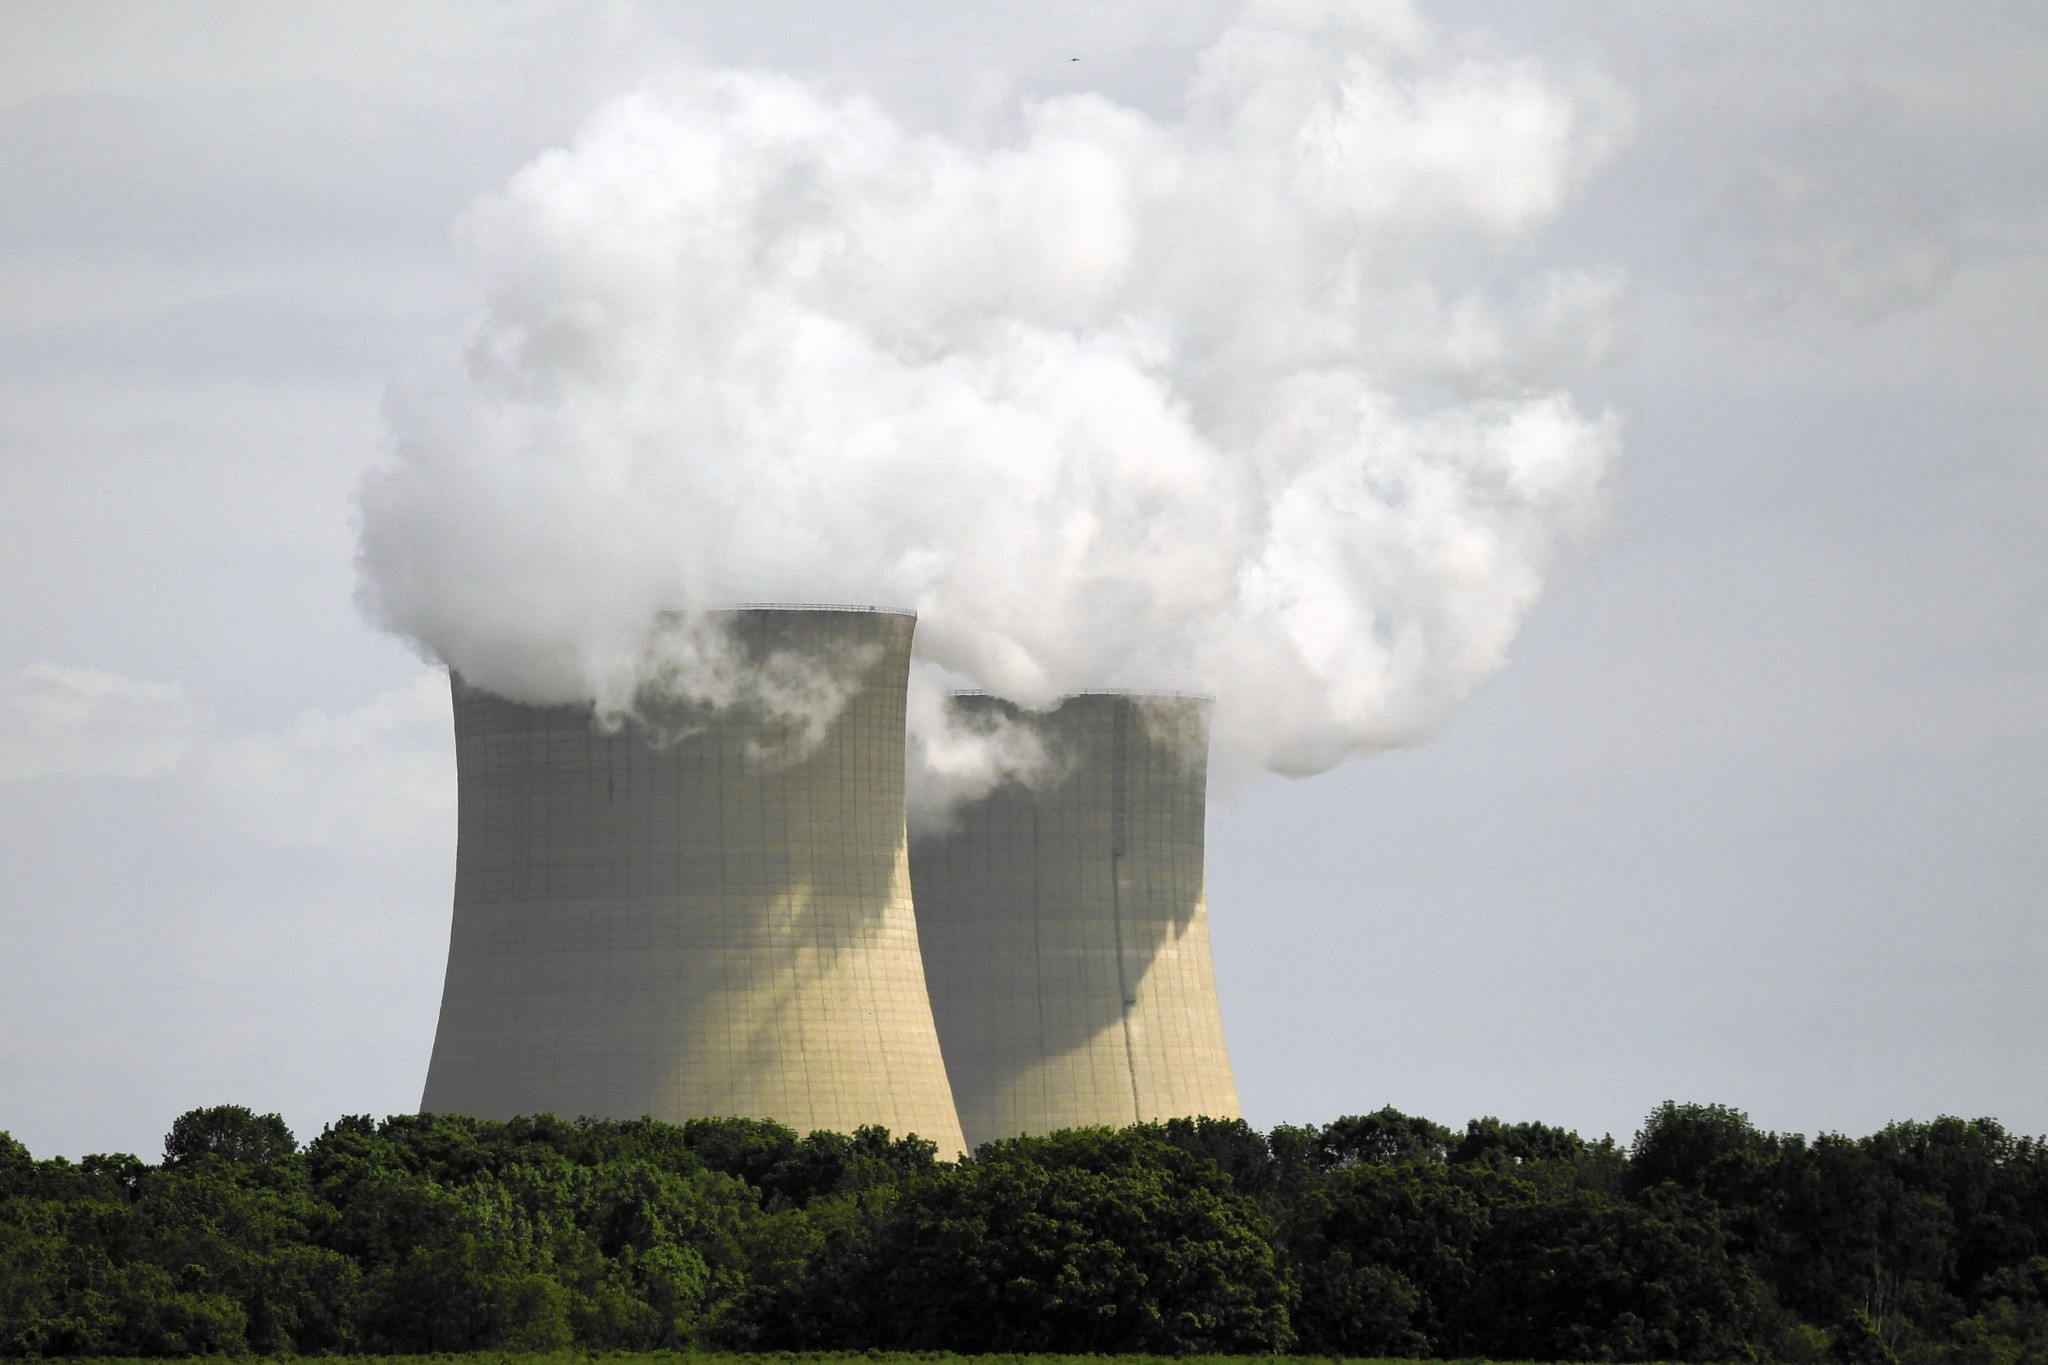 Exelon nuclear security